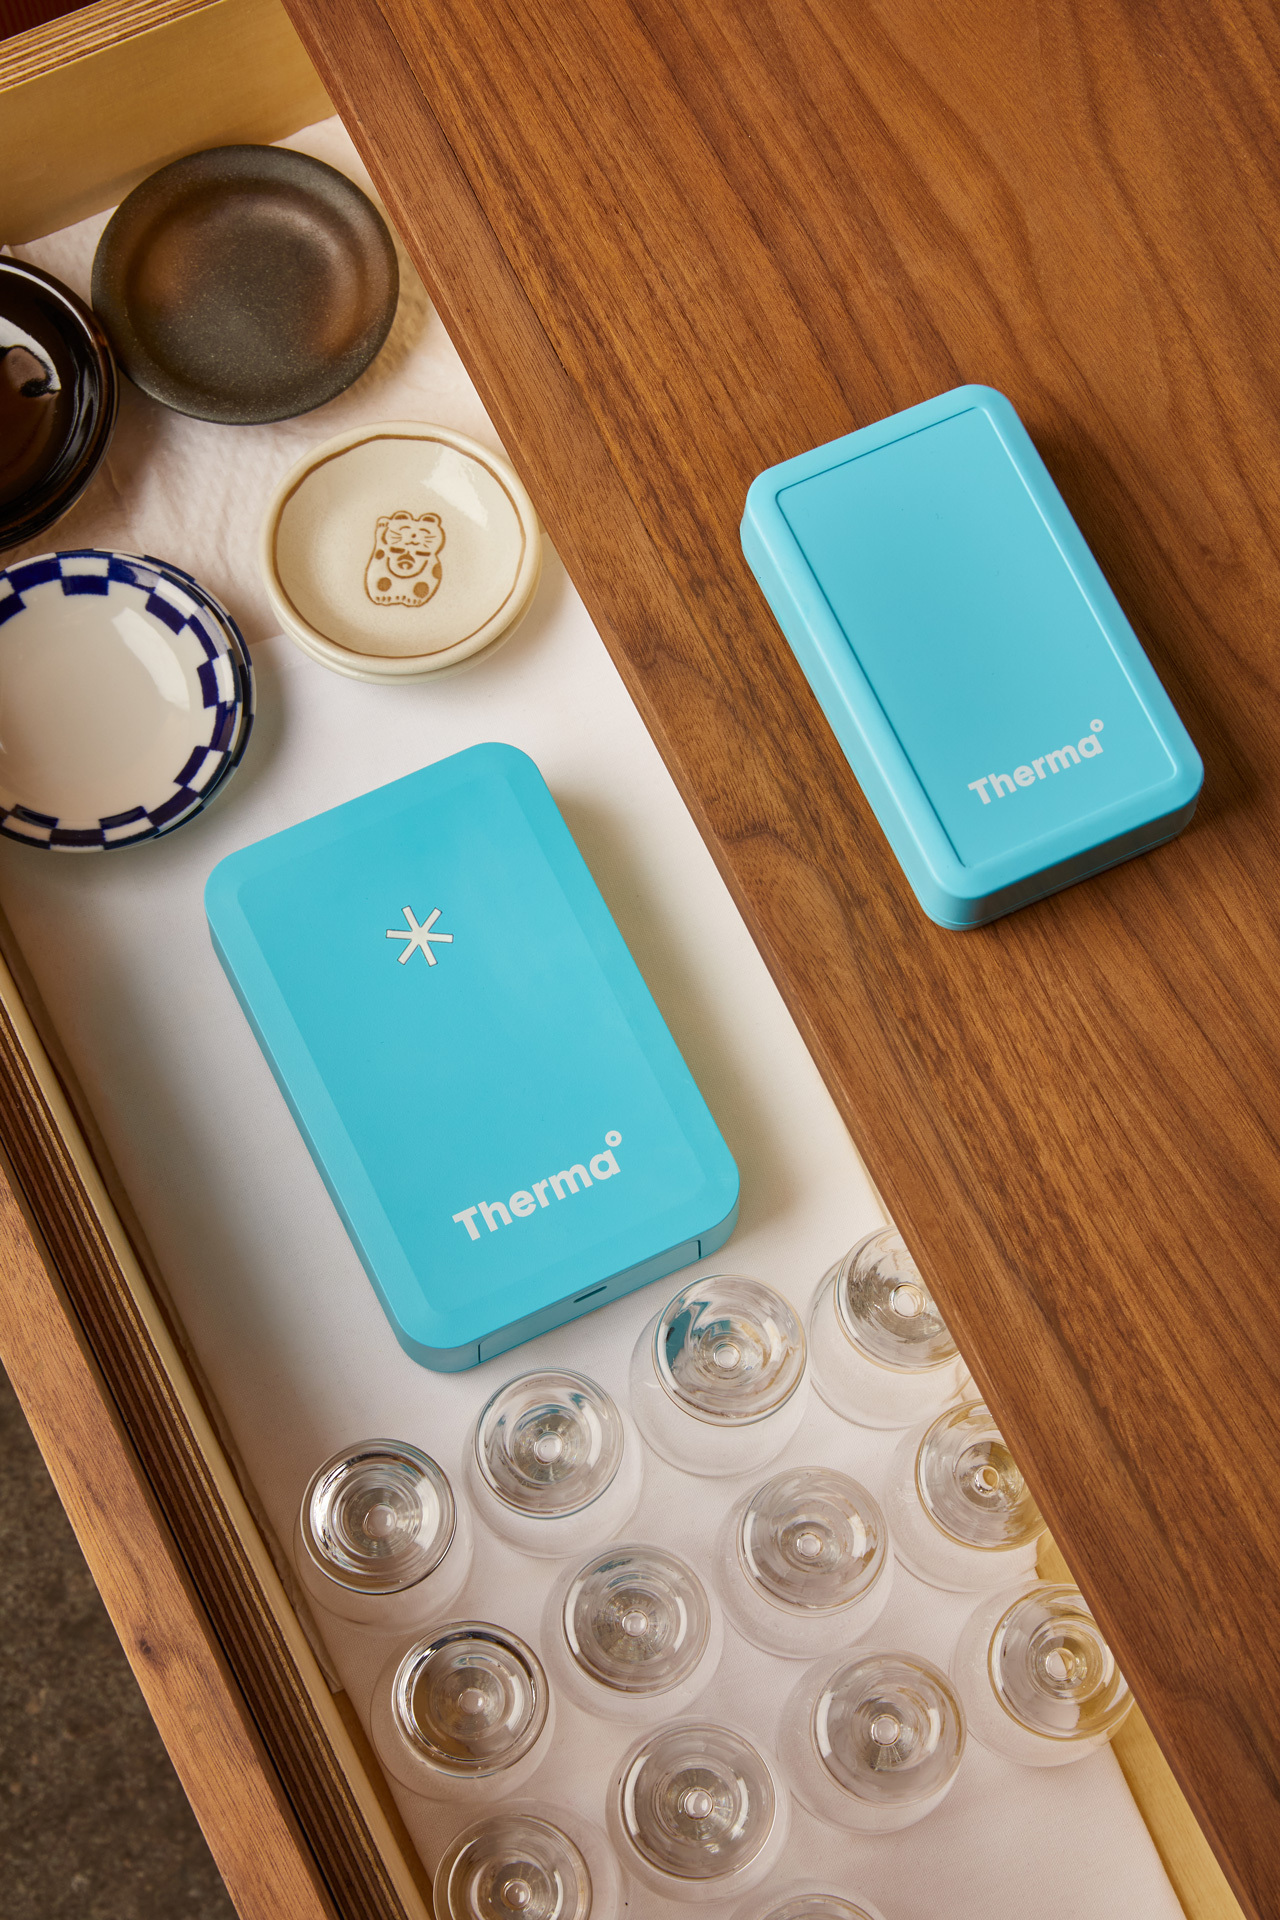 Therma hub and Therma temperature and humidity sensor on table